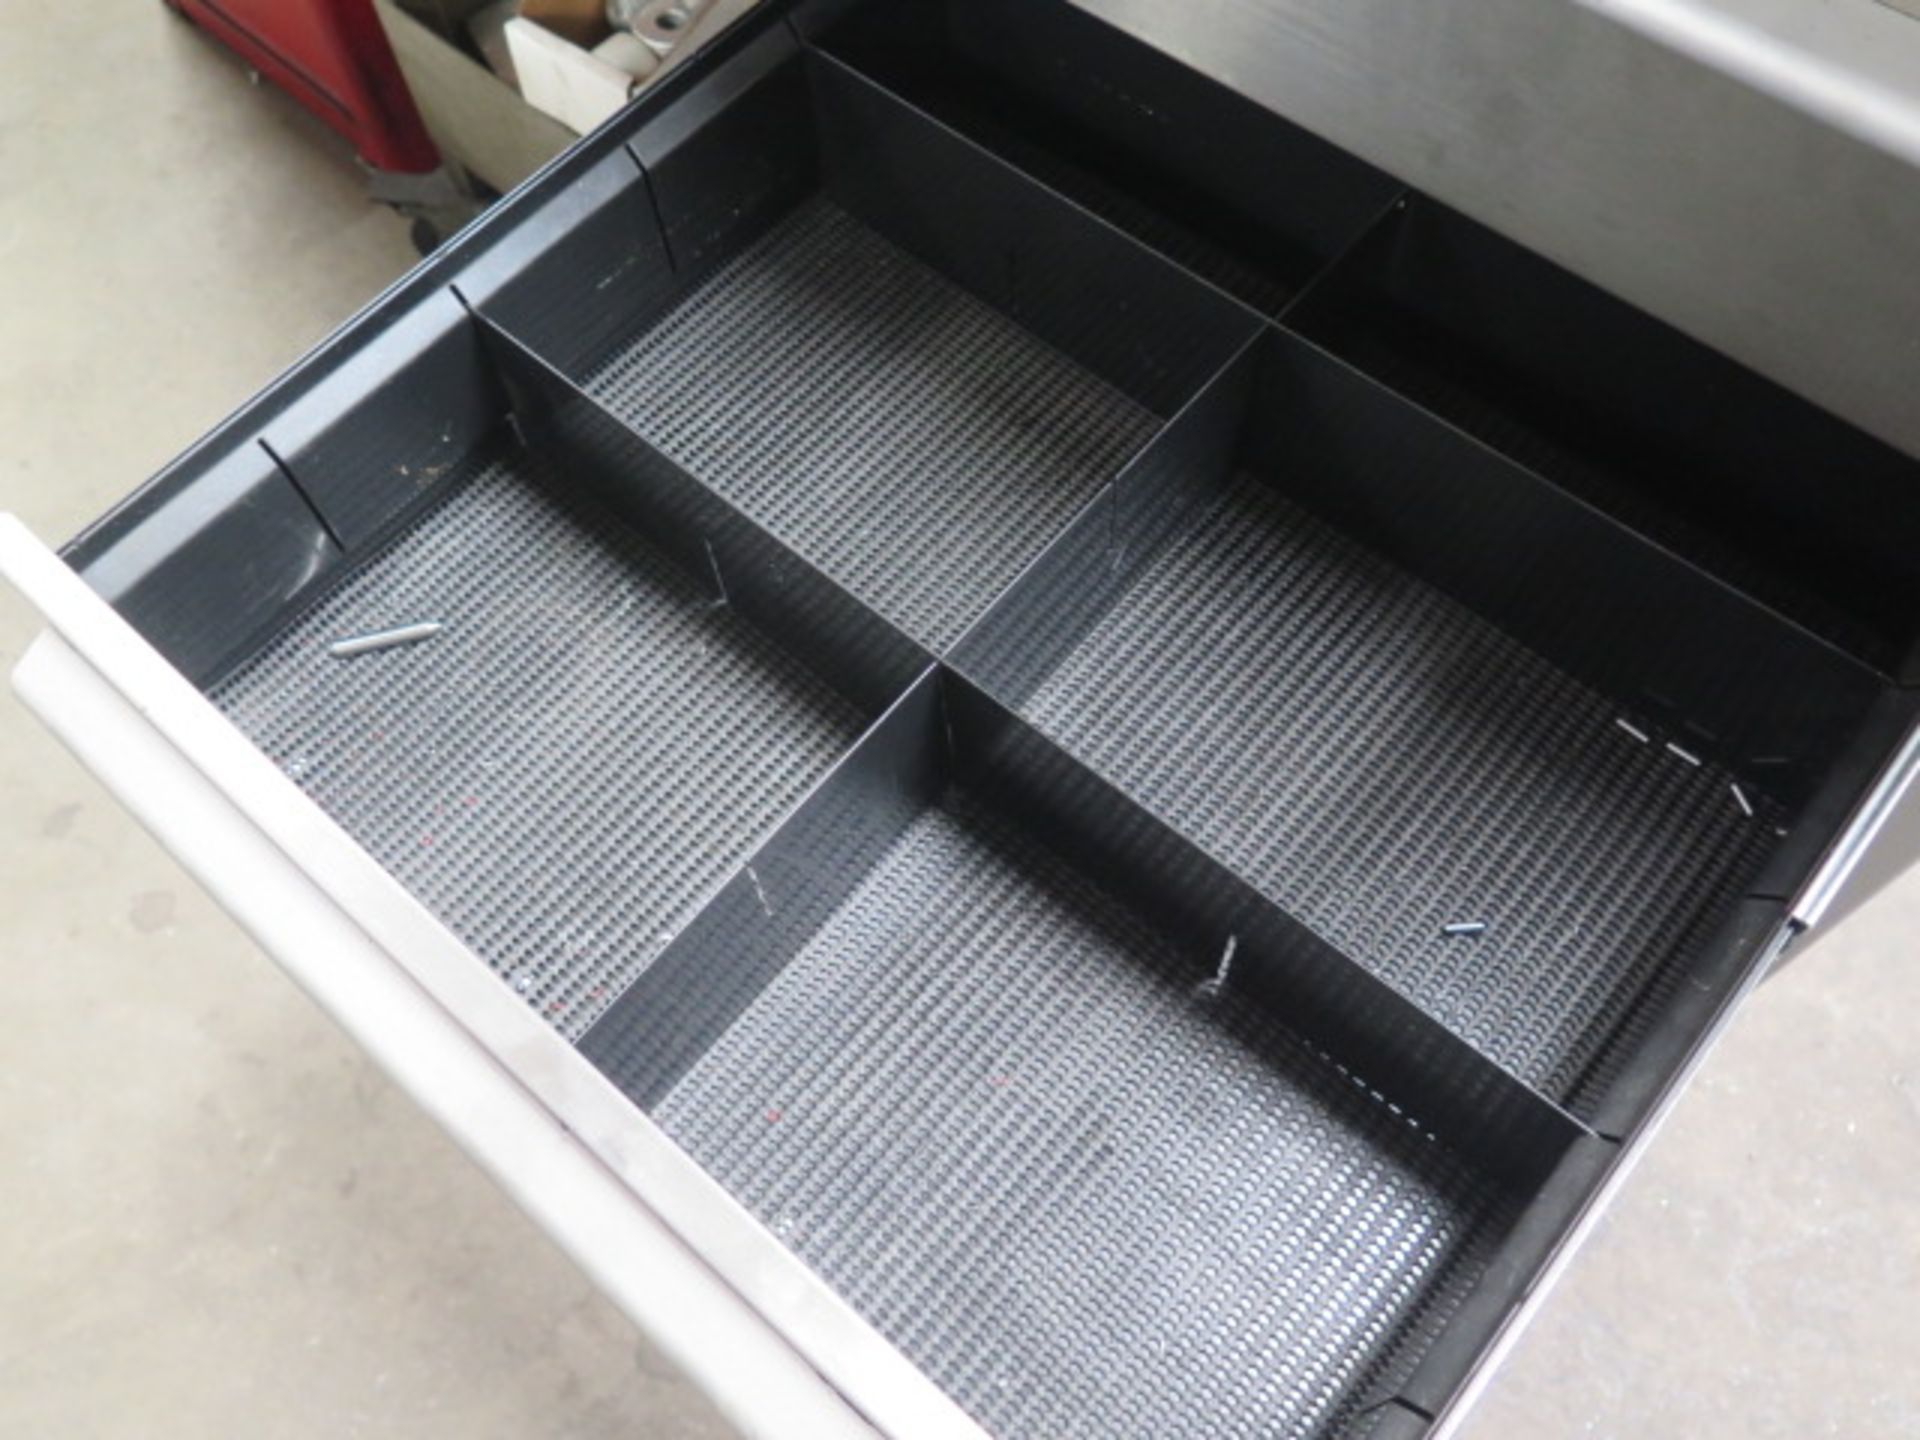 6-Drawer Tooling Cabinet w/ Chuck Jaws (SOLD AS-IS - NO WARRANTY) - Image 6 of 9